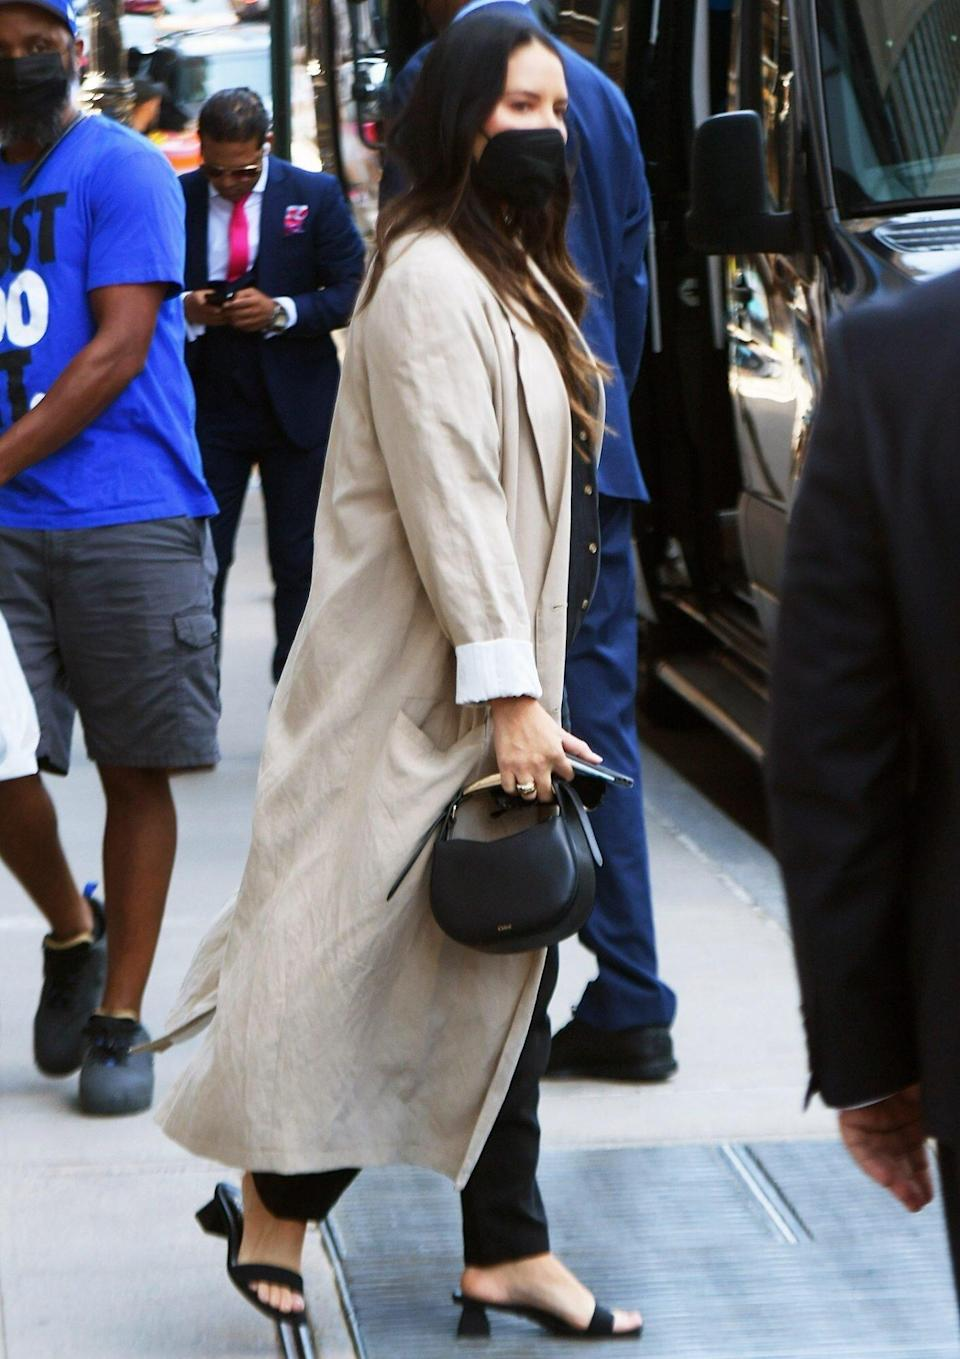 Pregnant Olivia Munn and boyfriend John Mulaney step out in NYC on Friday afternoon just days after days Mulaney revealed to Seth Meyers he and Munn are expecting a child. Pictured: Olivia Munn